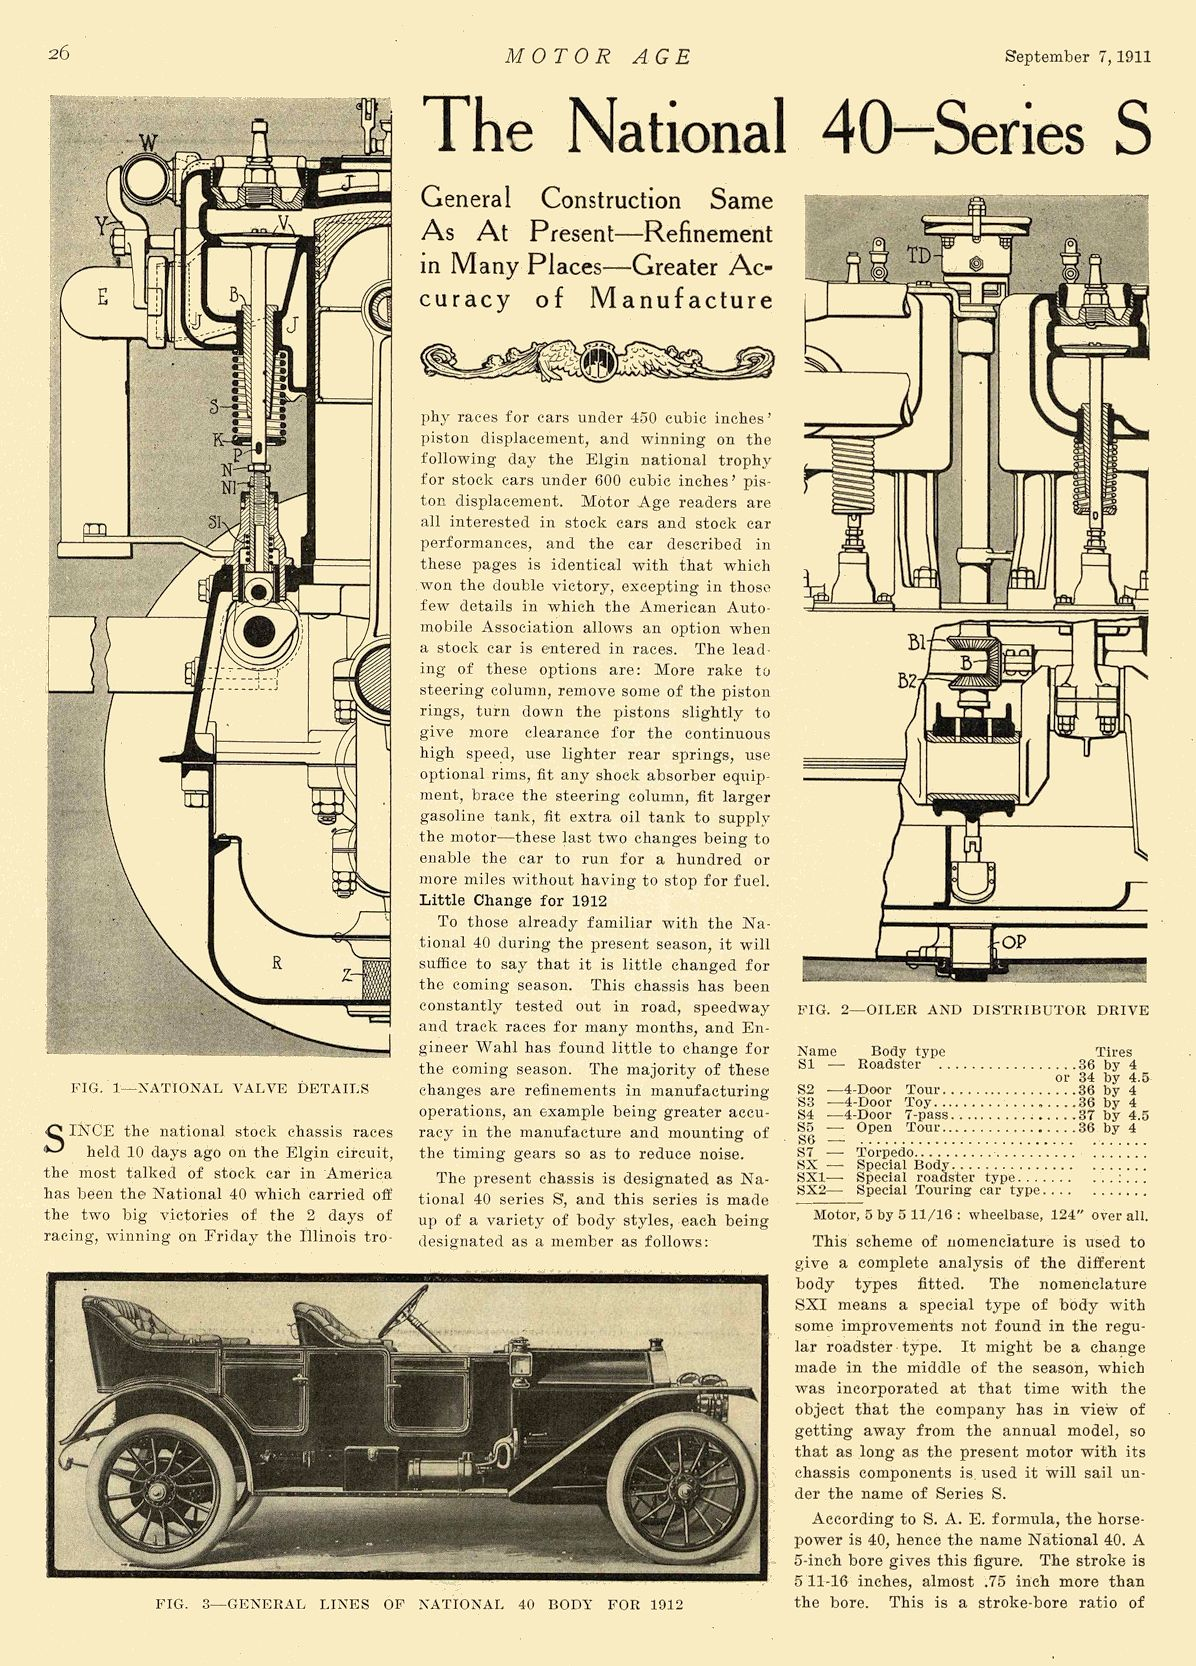 1912 9 7 NATIONAL Article The National 40—Series S National Motor Vehicle Co. Indianapolis, IND MOTOR AGE September 7, 1911 8.25″x12″ page 26